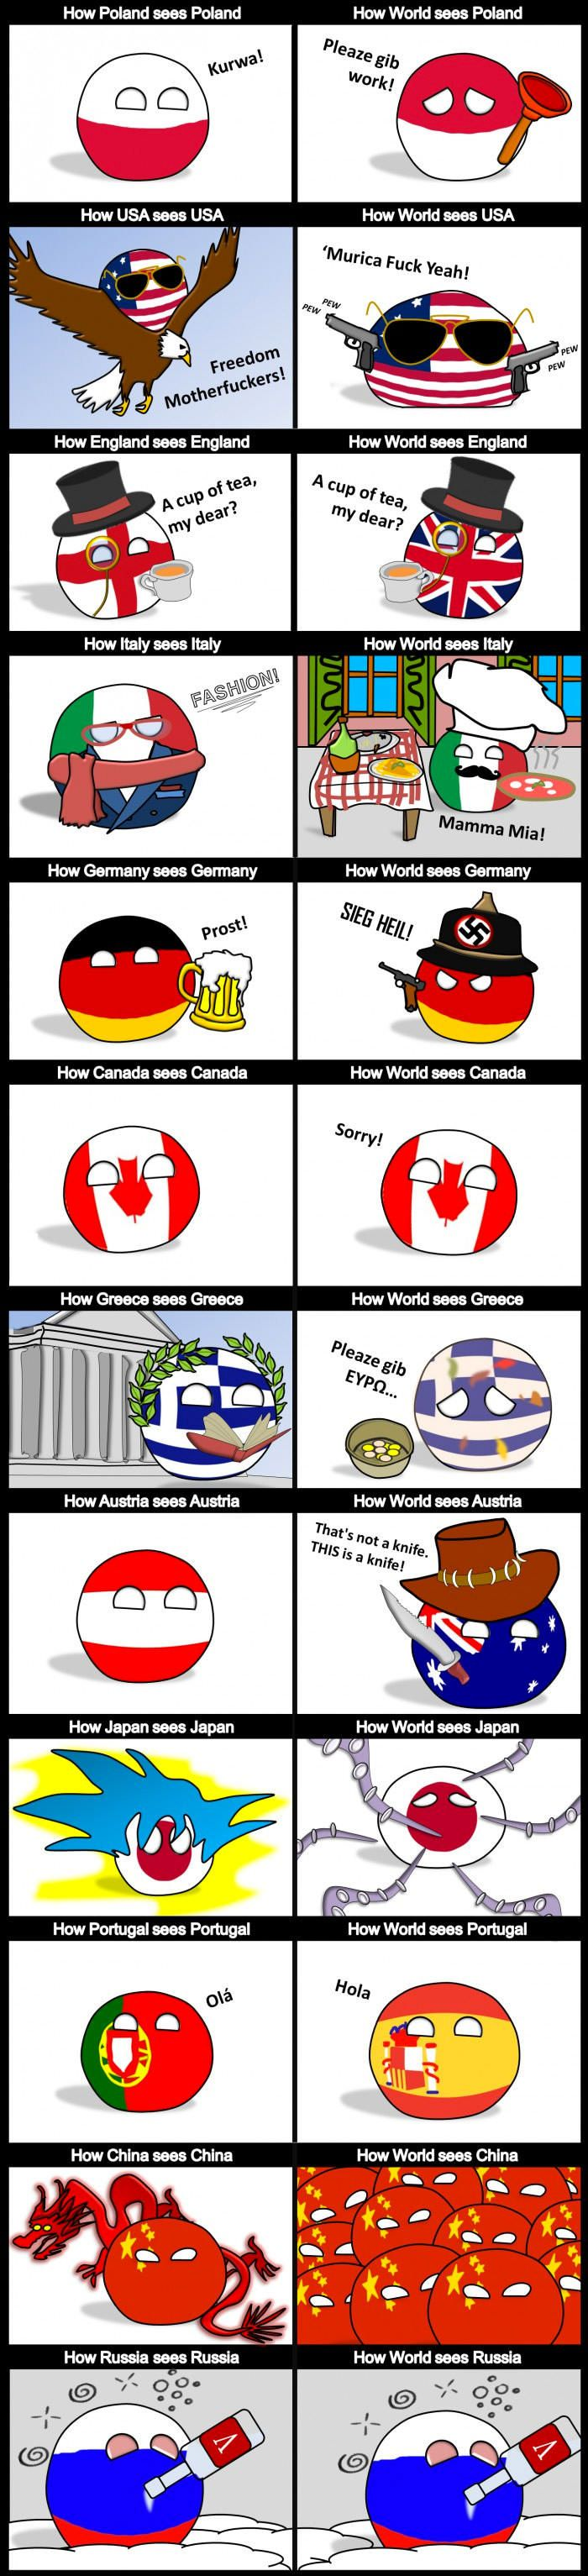 Countryballs: expectation vs. reality goku japan....brilliant!